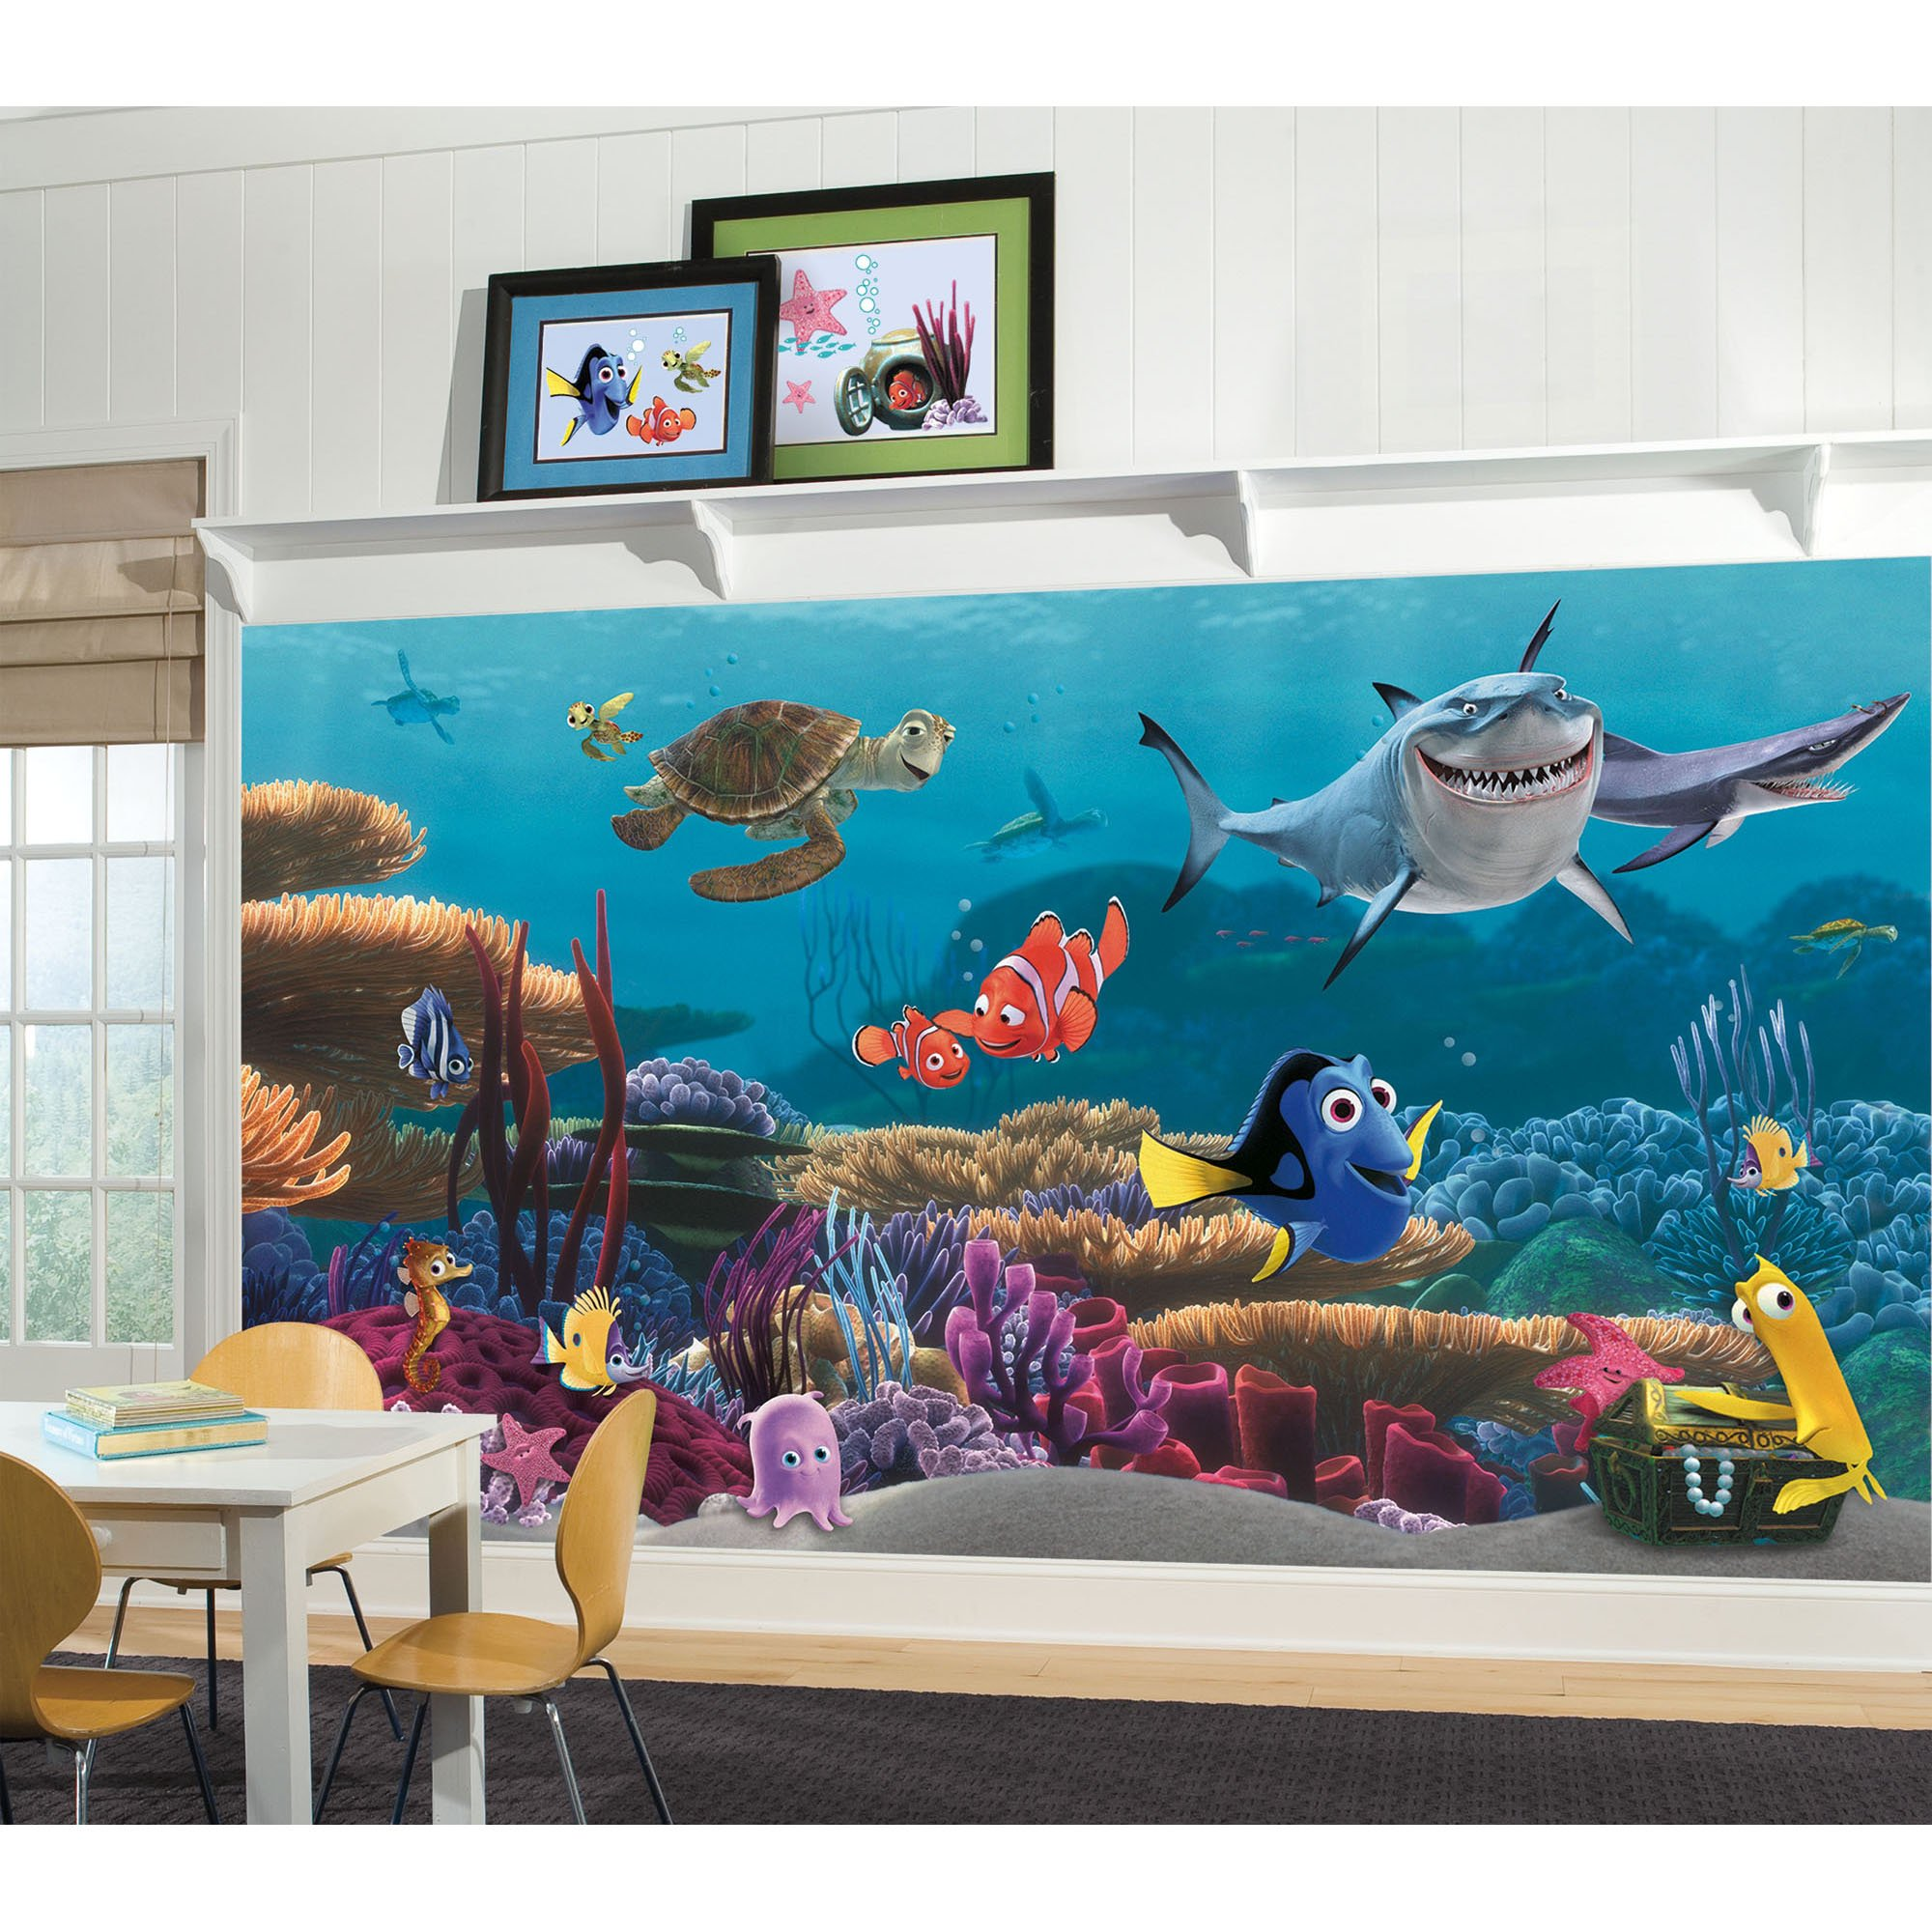 RoomMates Finding Nemo Prepasted, Removable Wall Mural - 6' X 10.5' by RoomMates (Image #2)